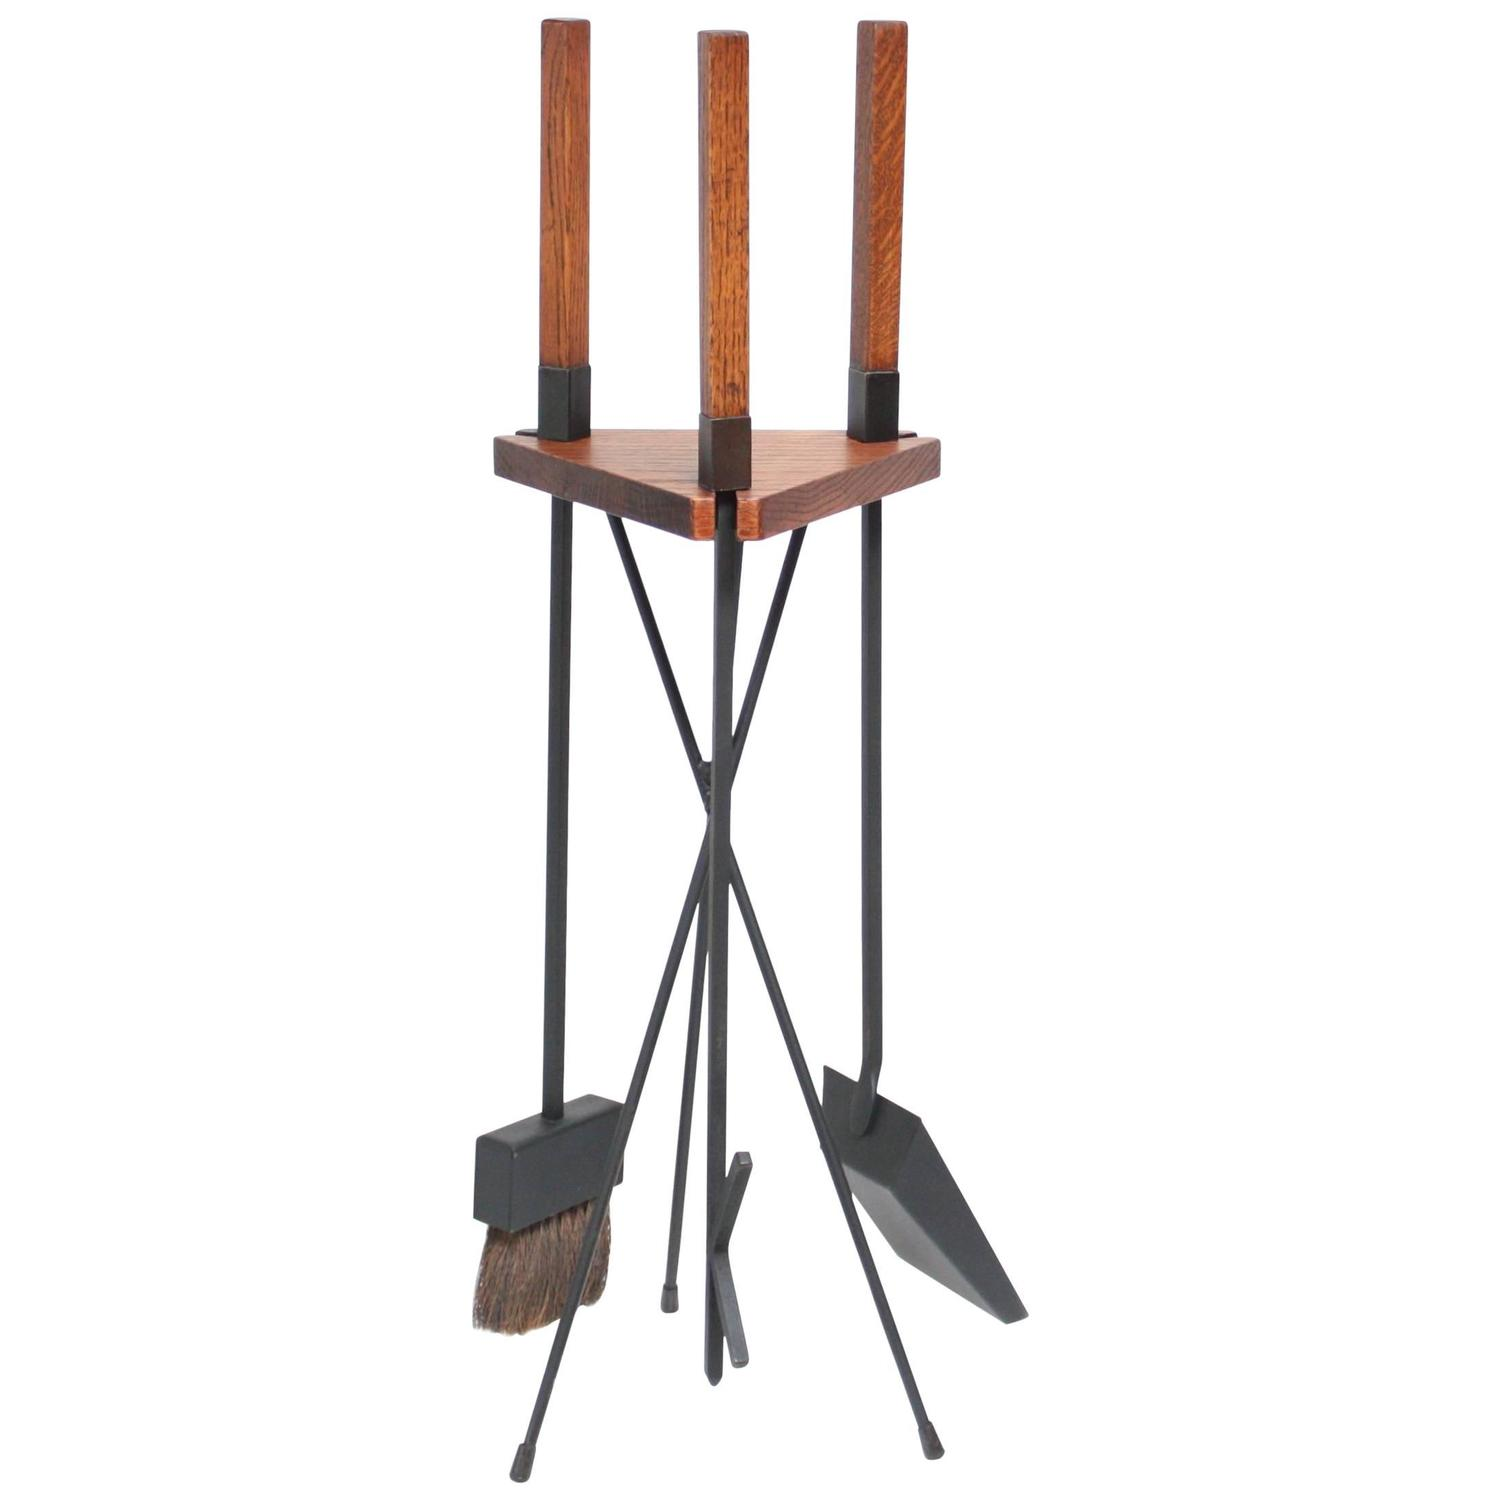 fireplace tools modern - fireplace tool set attributed to seymour at stdibs